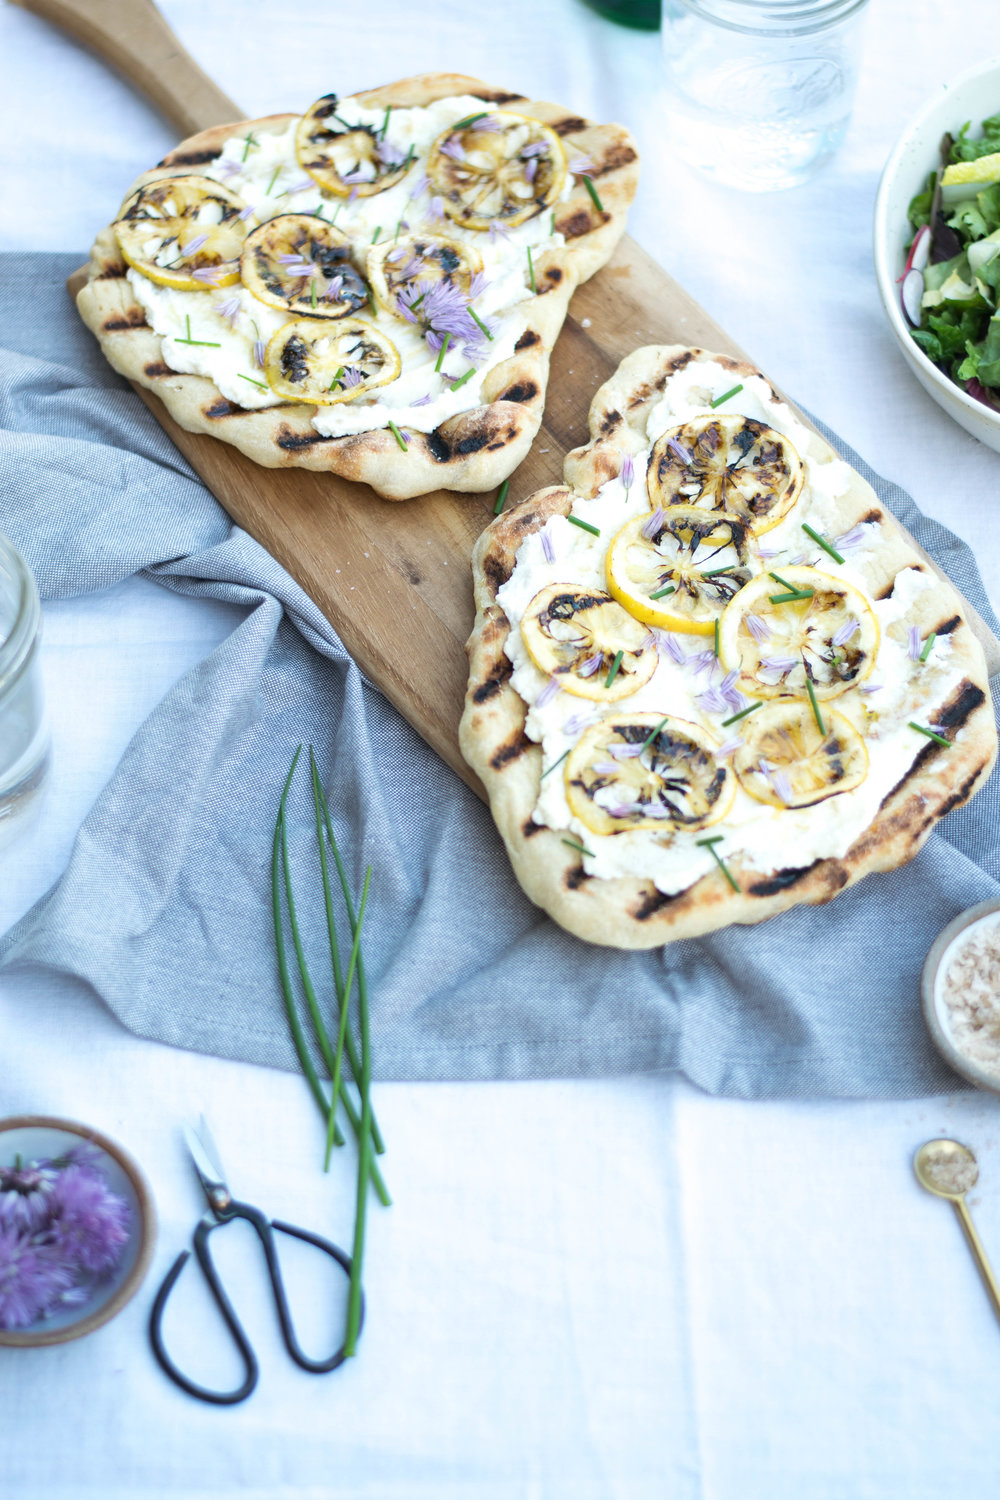 Grilled Flatbreads with Charred Lemon, Ricotta, + Chive Blossoms | All Purpose Flour Child